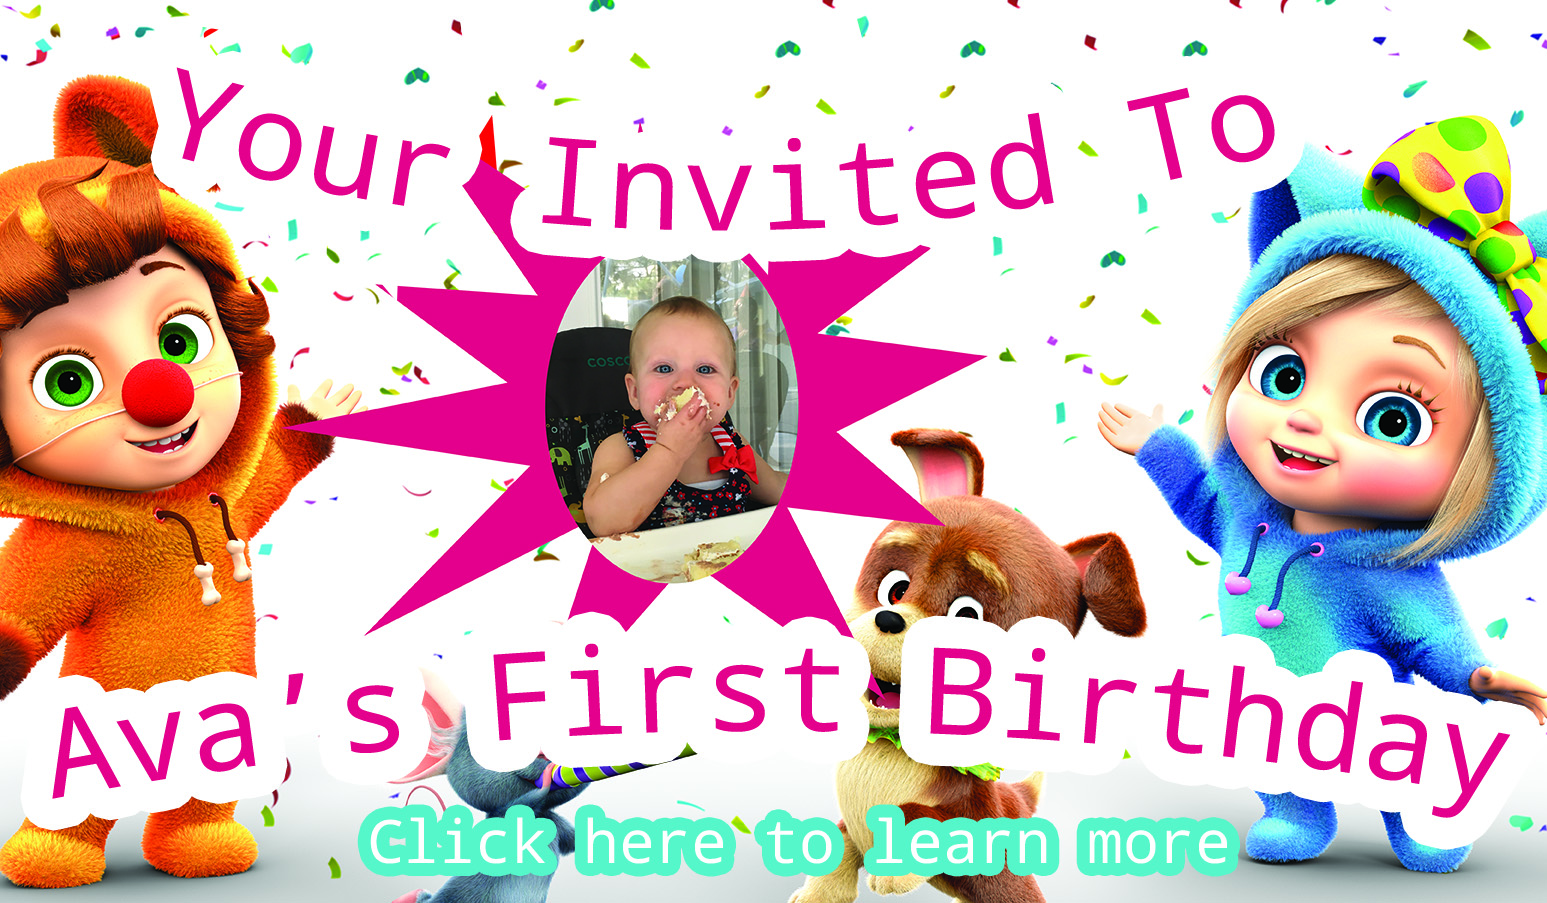 Invitation Party with awesome invitations ideas